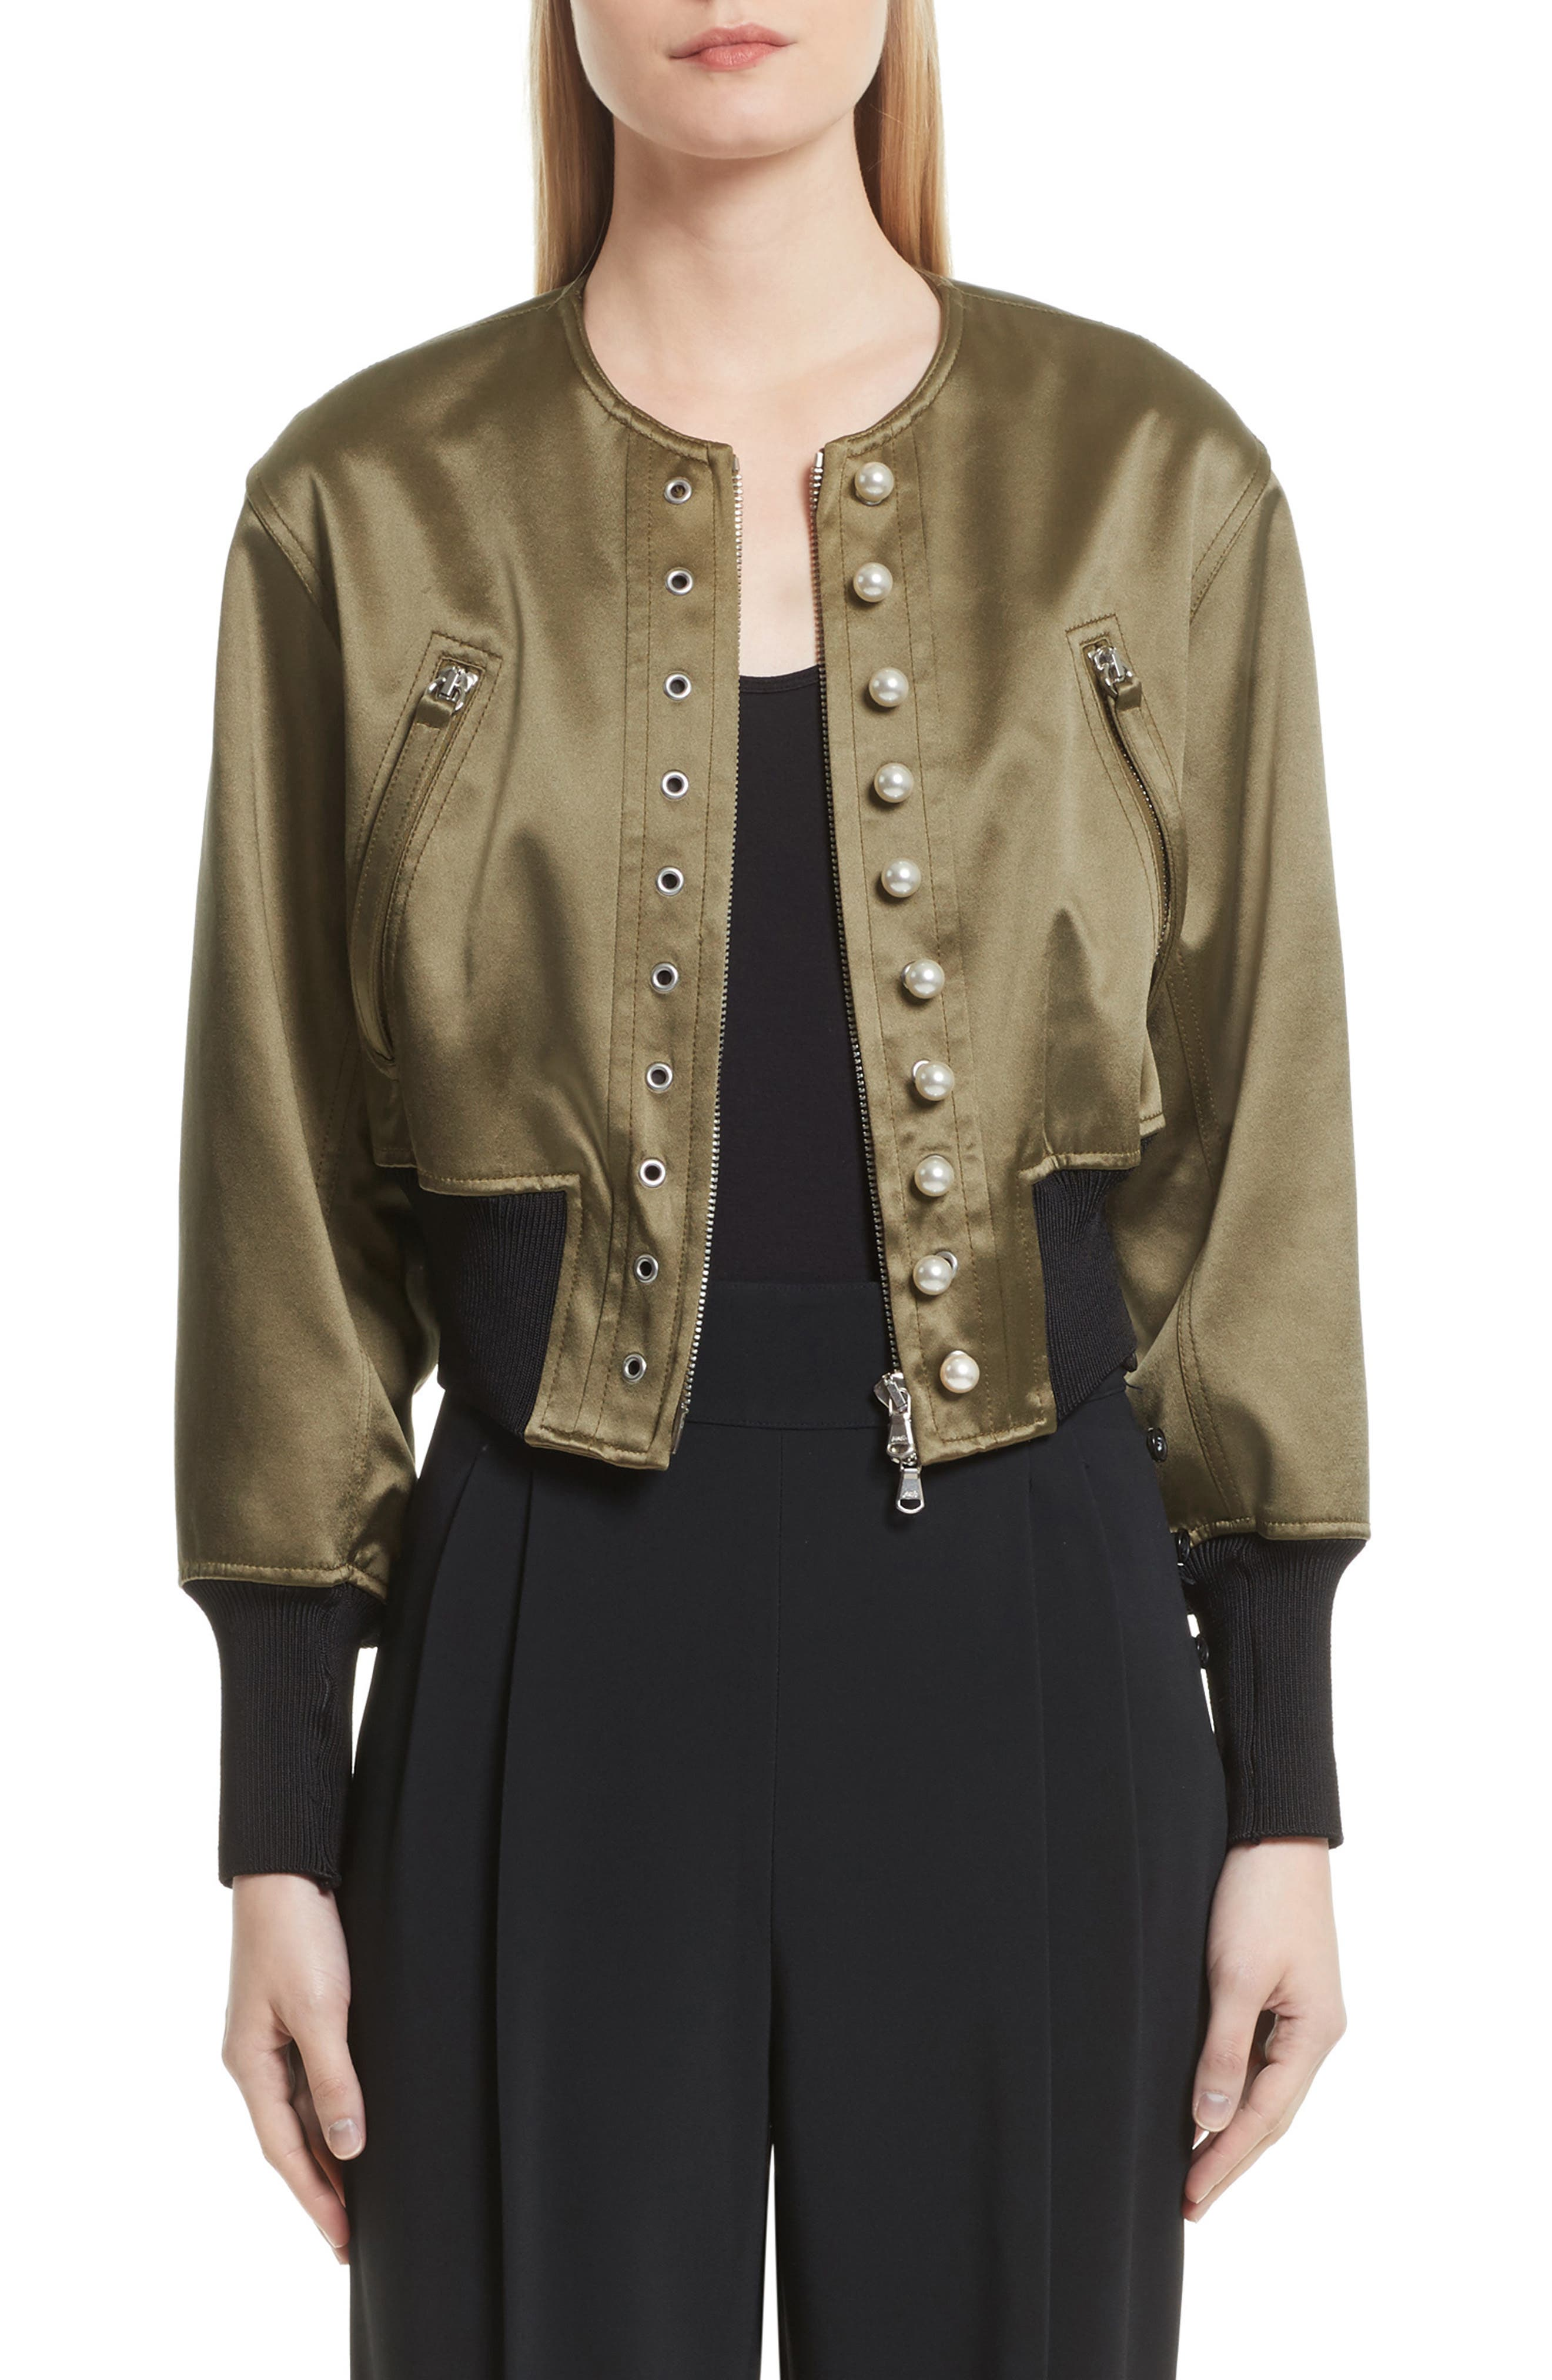 Grommet & Faux Pearl Embellished Bomber Jacket,                             Main thumbnail 1, color,                             301